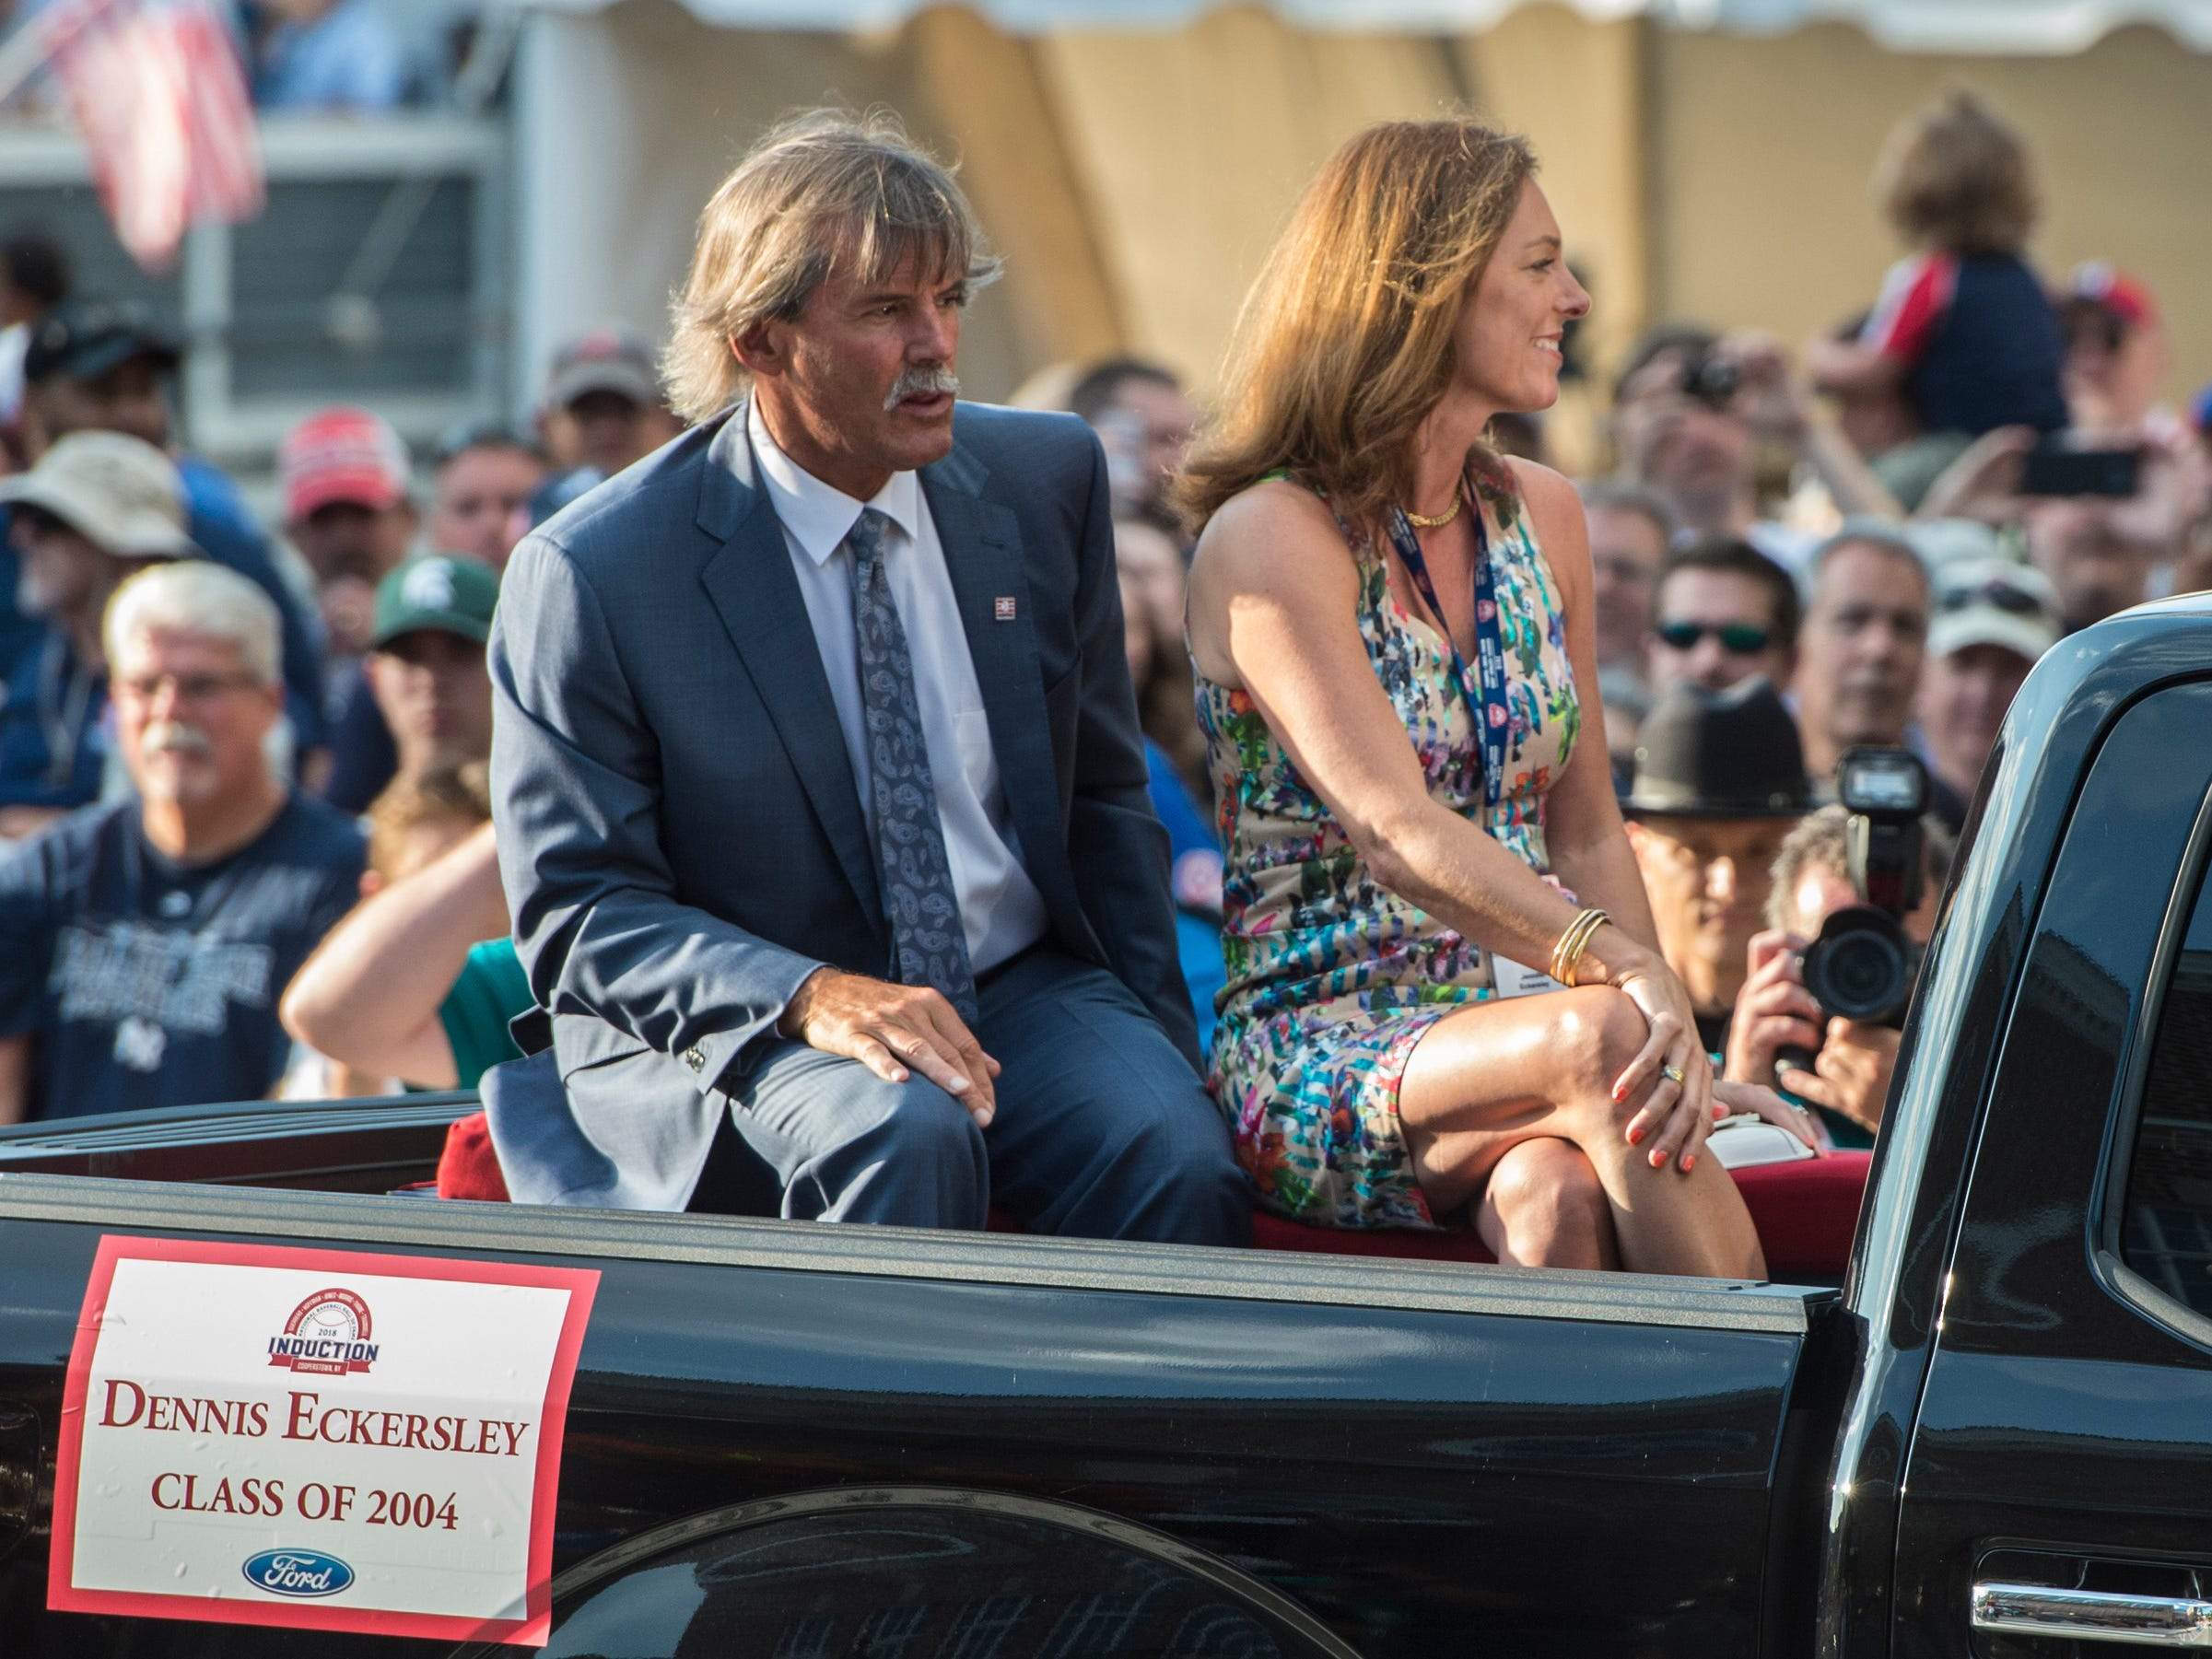 Hall of Fame member Dennis Eckersley (left) arrives at National Baseball Hall of Fame.